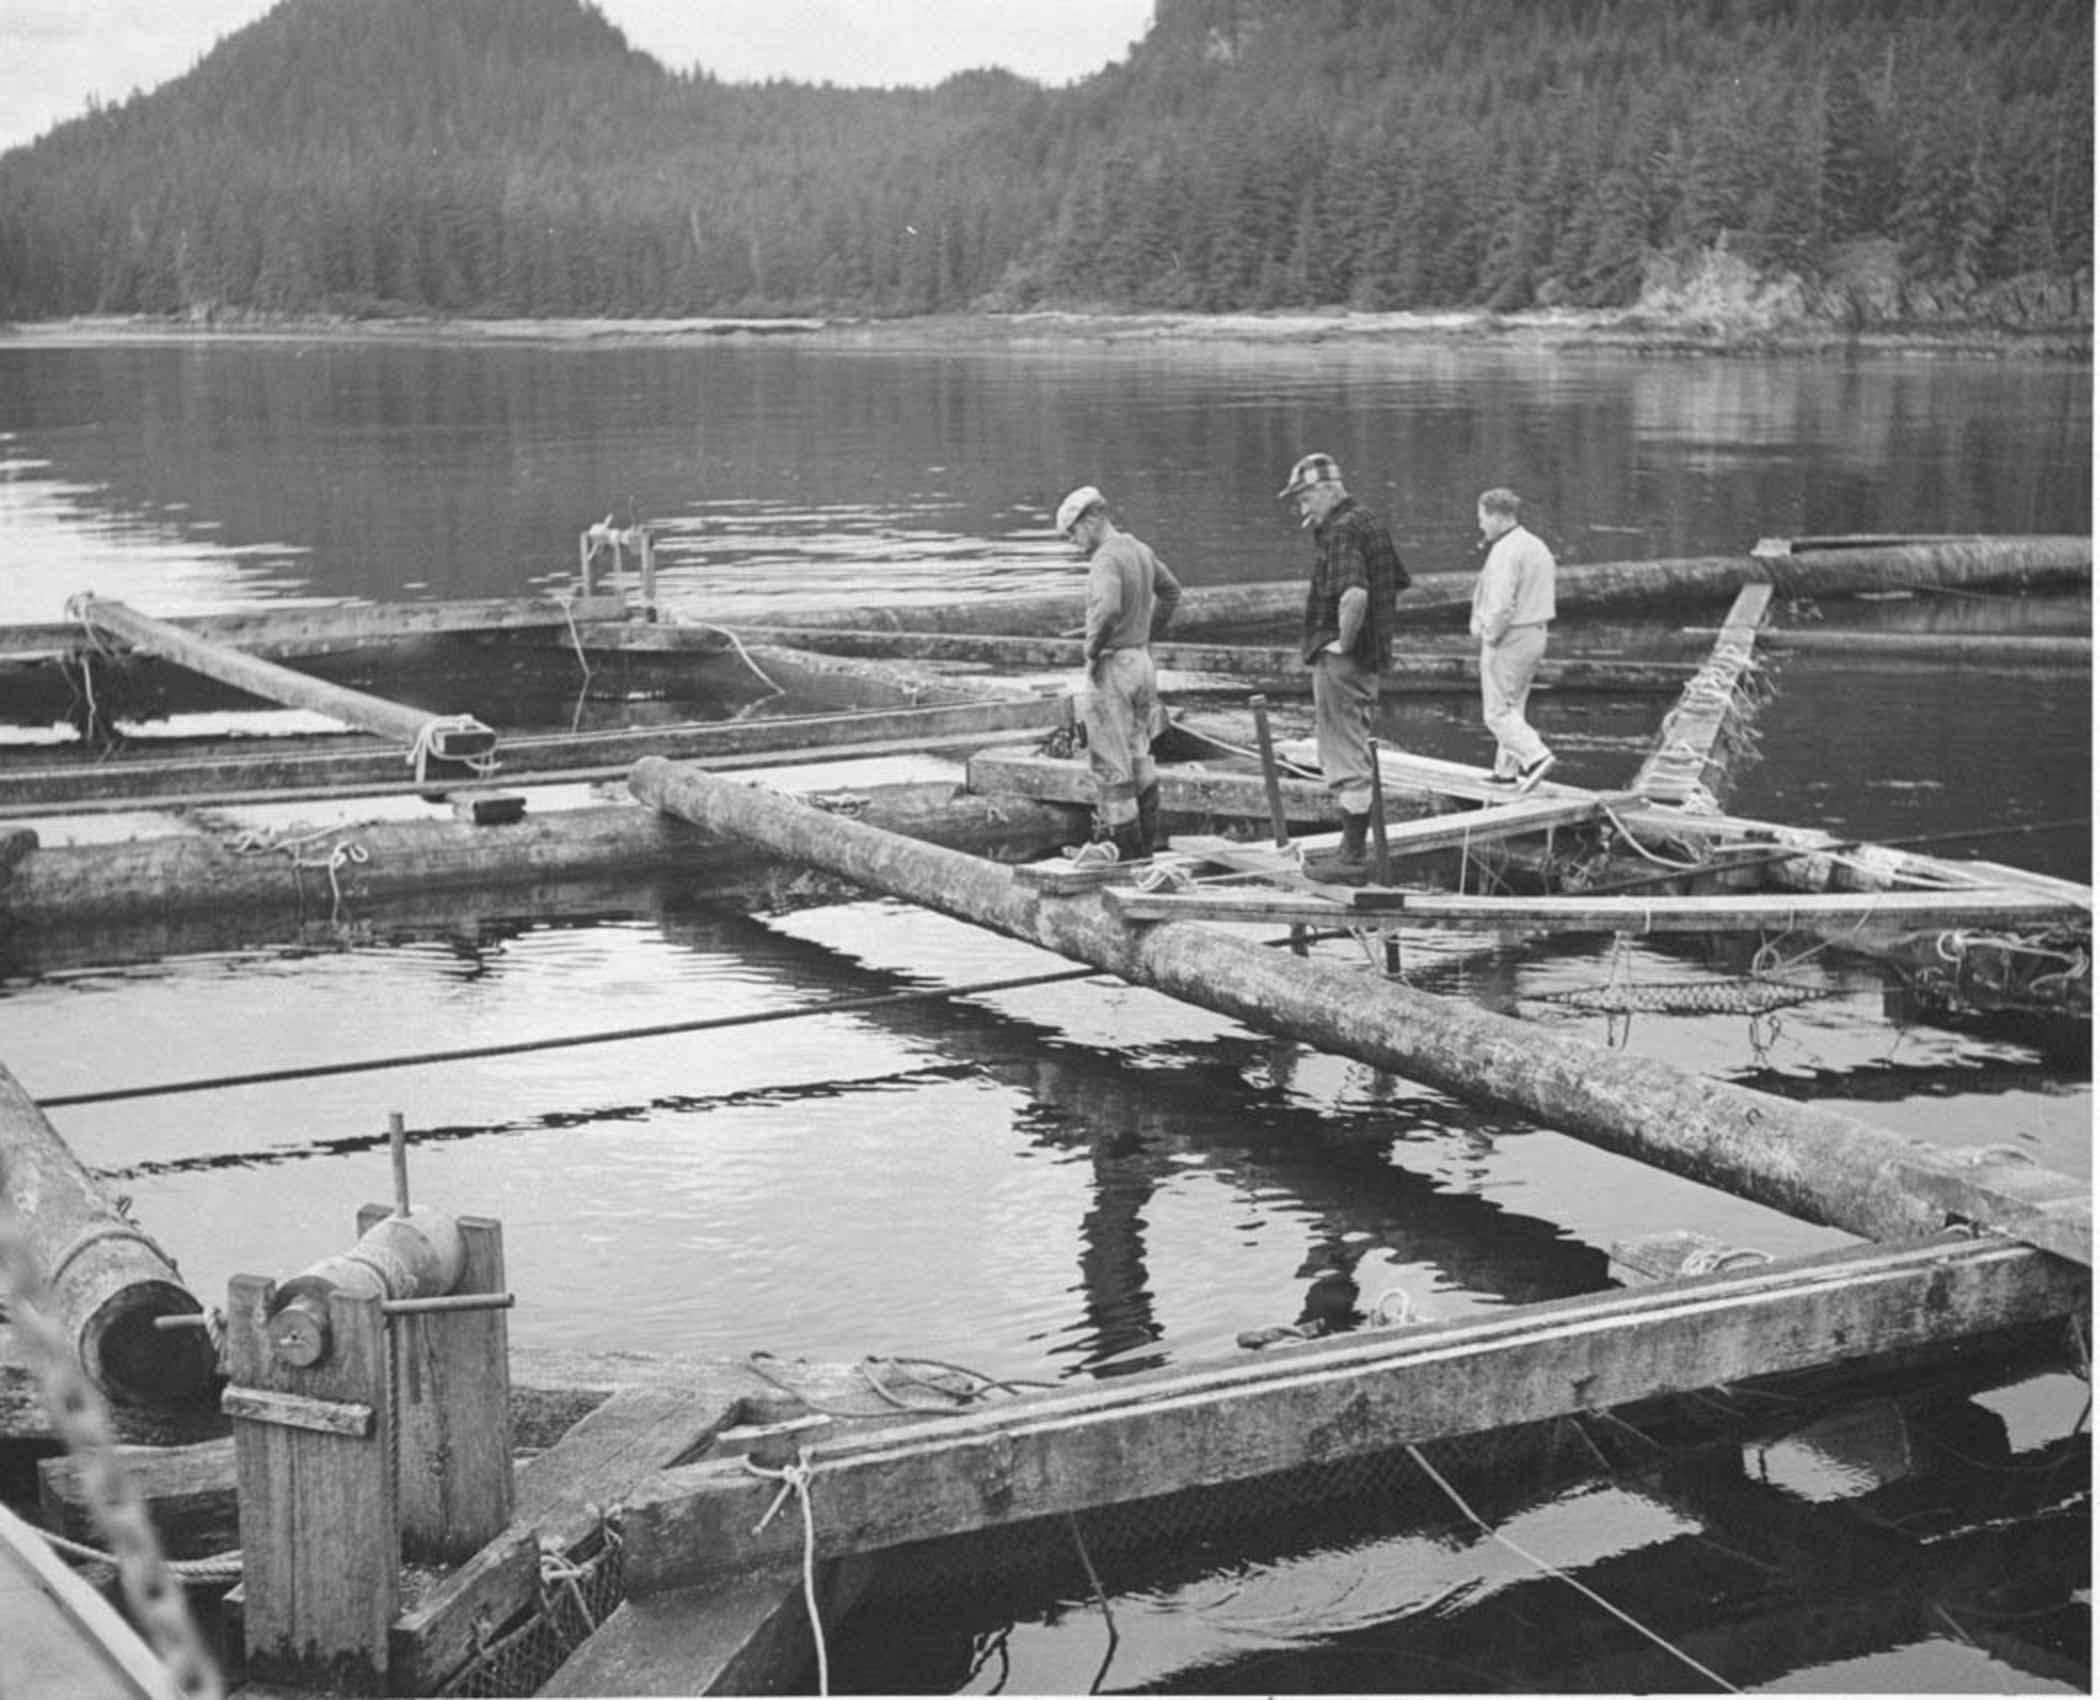 plane creek mill history with Floating Fish Trap Constructed Of Stripped Logs And Lumber on I0000s iQ4NMAZqQ in addition Floating Fish Trap Constructed Of Stripped Logs And Lumber further And Stability Technology Isn 39 T Such A Good Friend As A Book A Book likewise Kate Middleton Bare Bottom Photo n 5402476 as well Chevy Inline Six Supercharger.